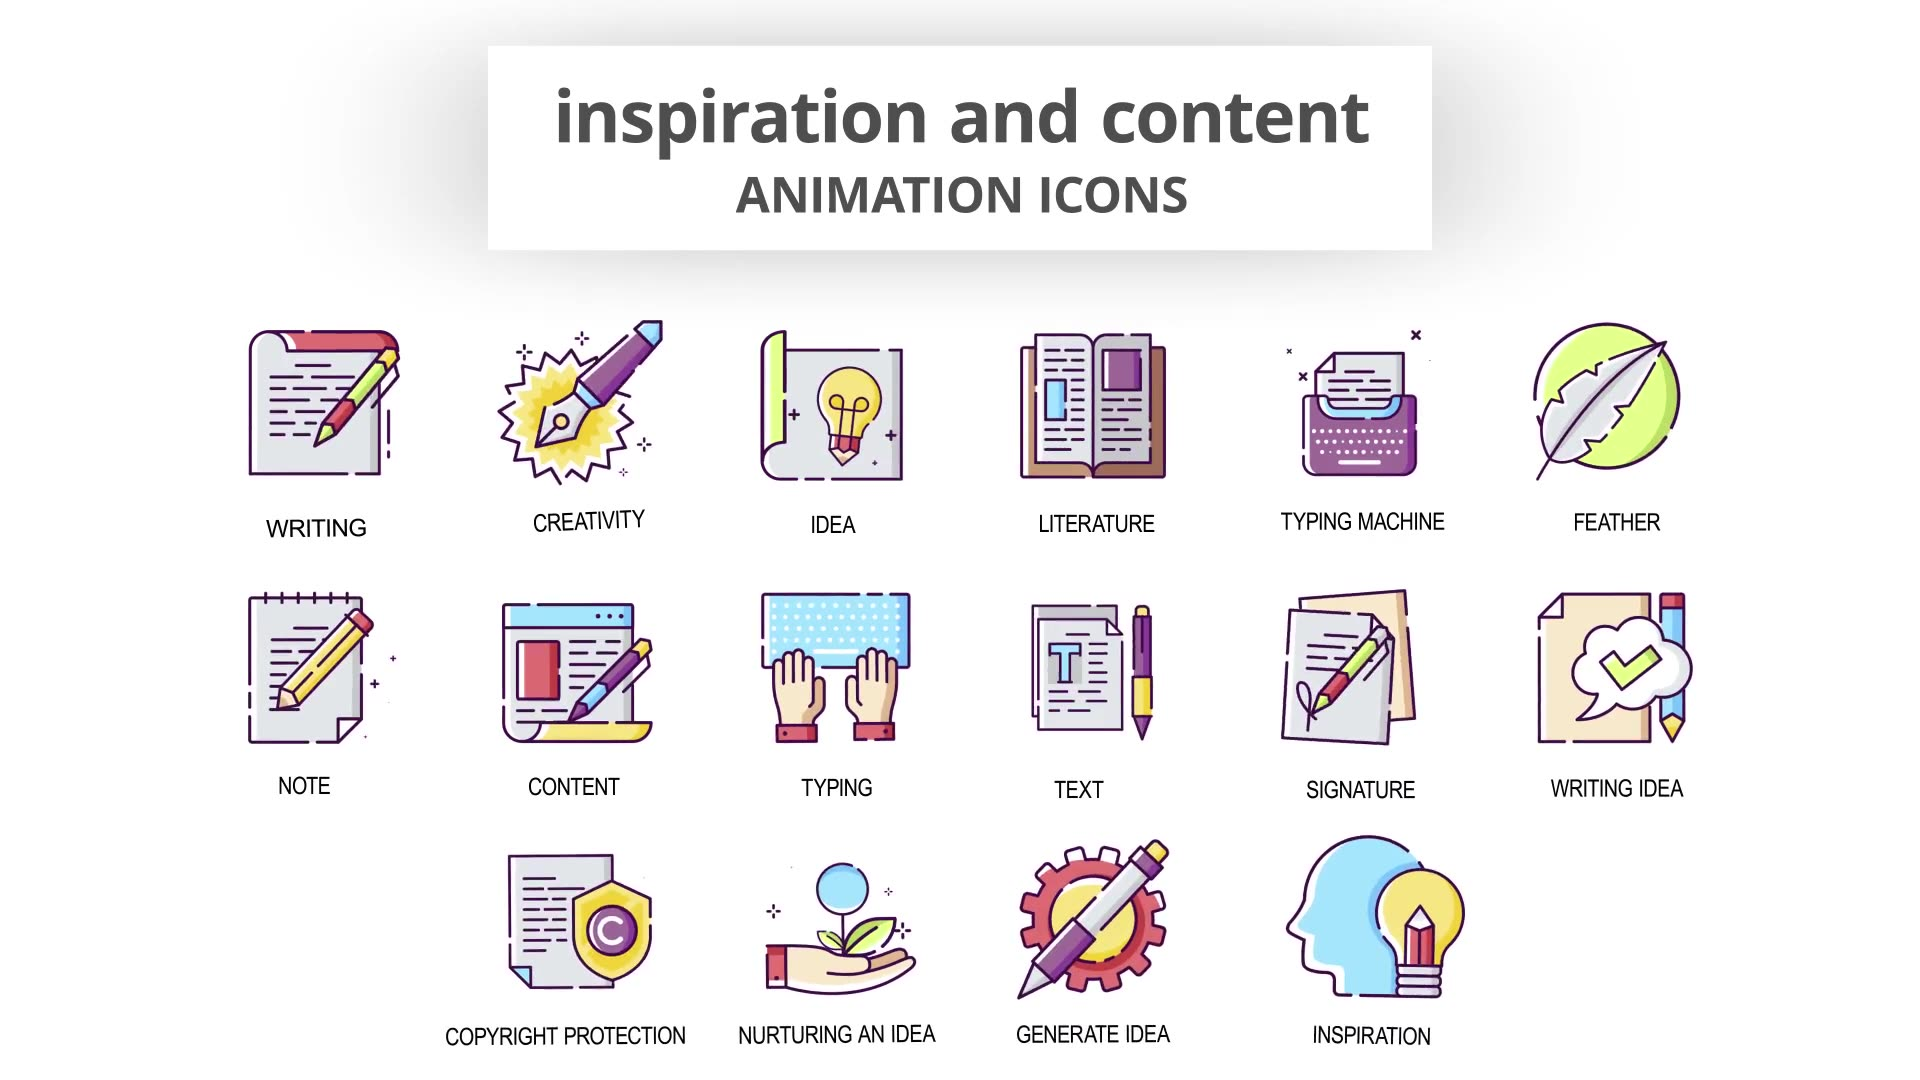 Inspiration & Content Animation Icons Videohive 30041554 After Effects Image 5